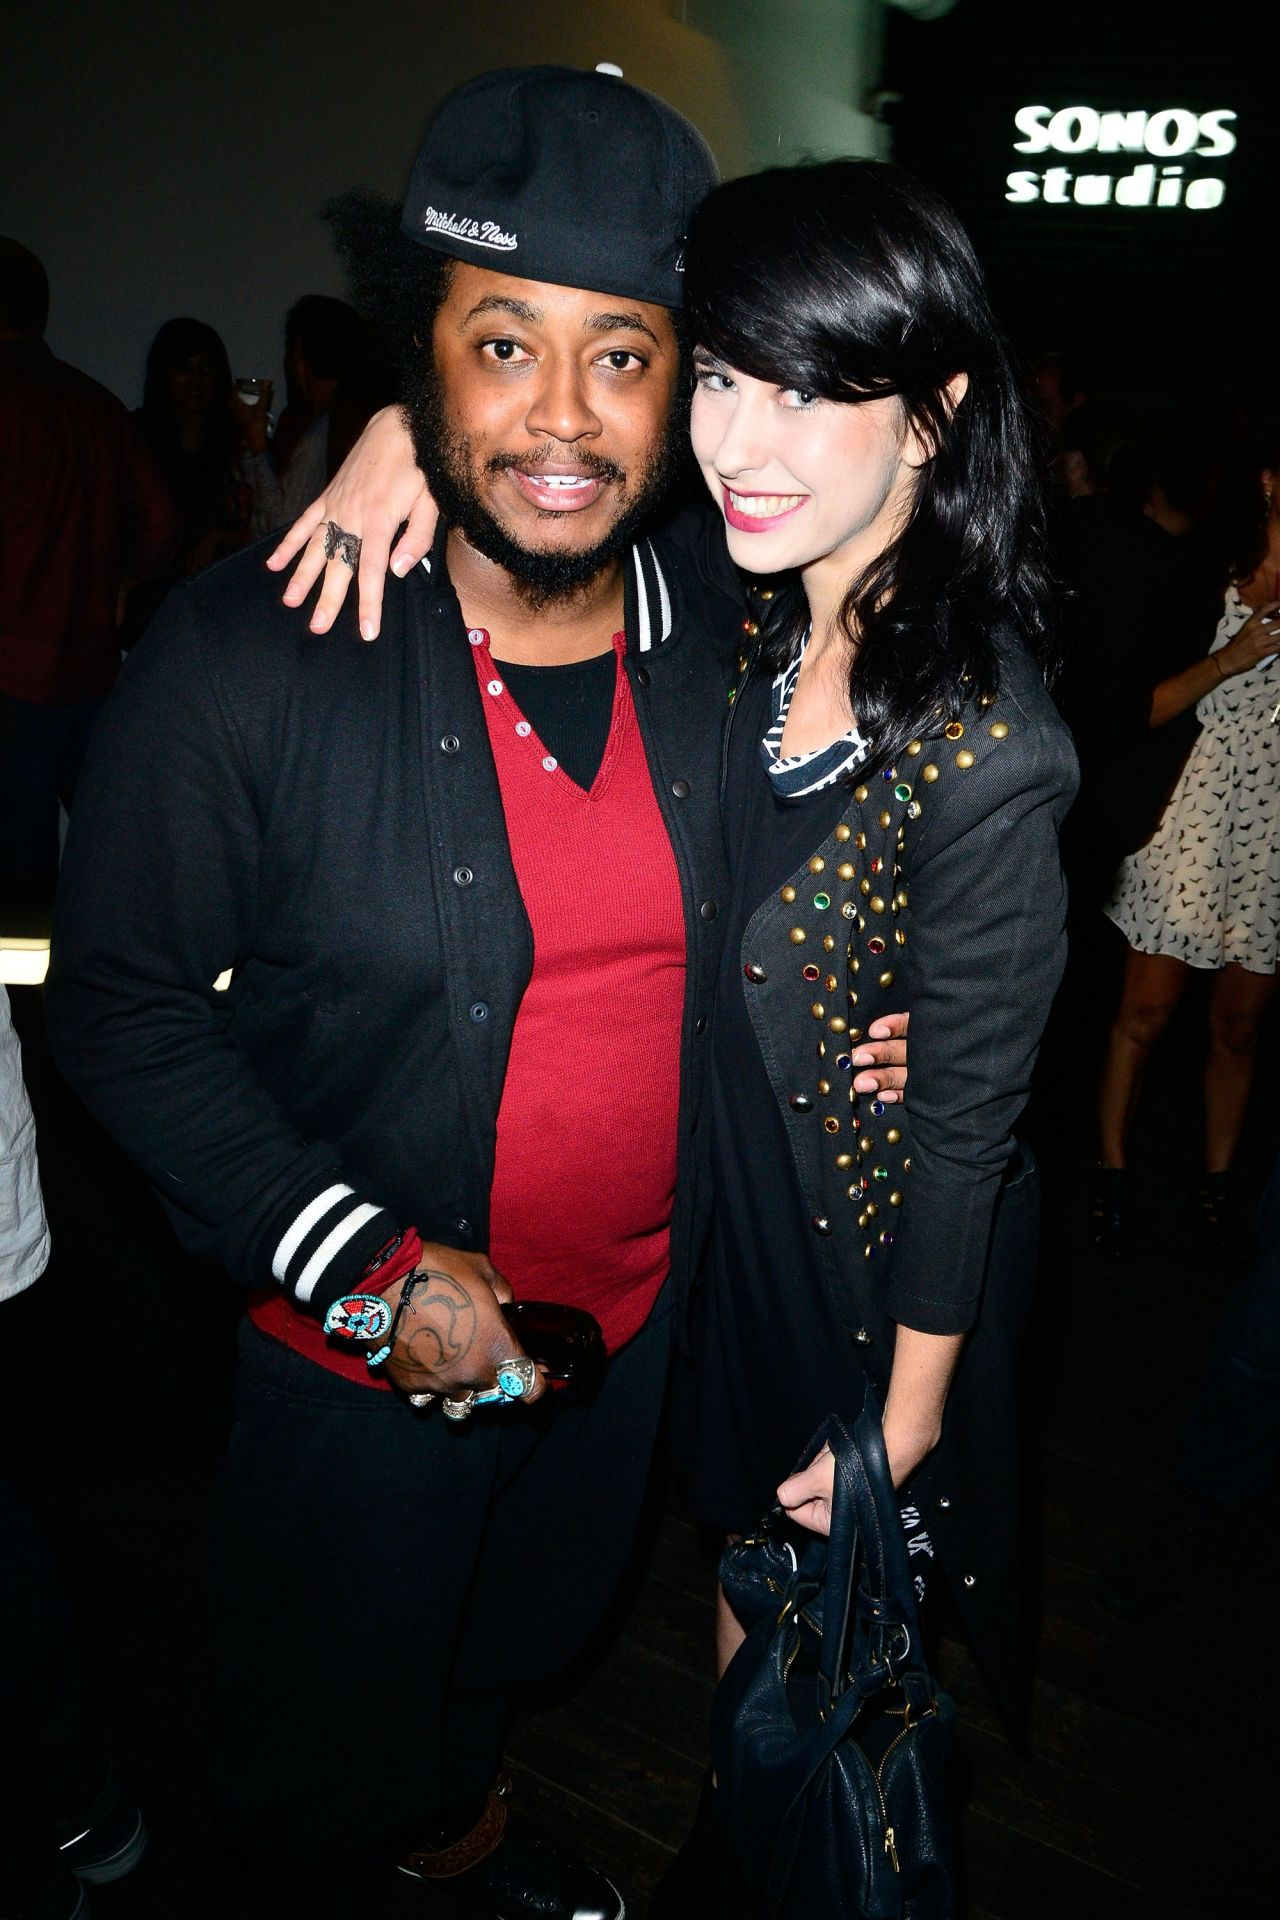 Kimbra Night Out Style - 'Algo-Rhythms' Exhibition Opening ...